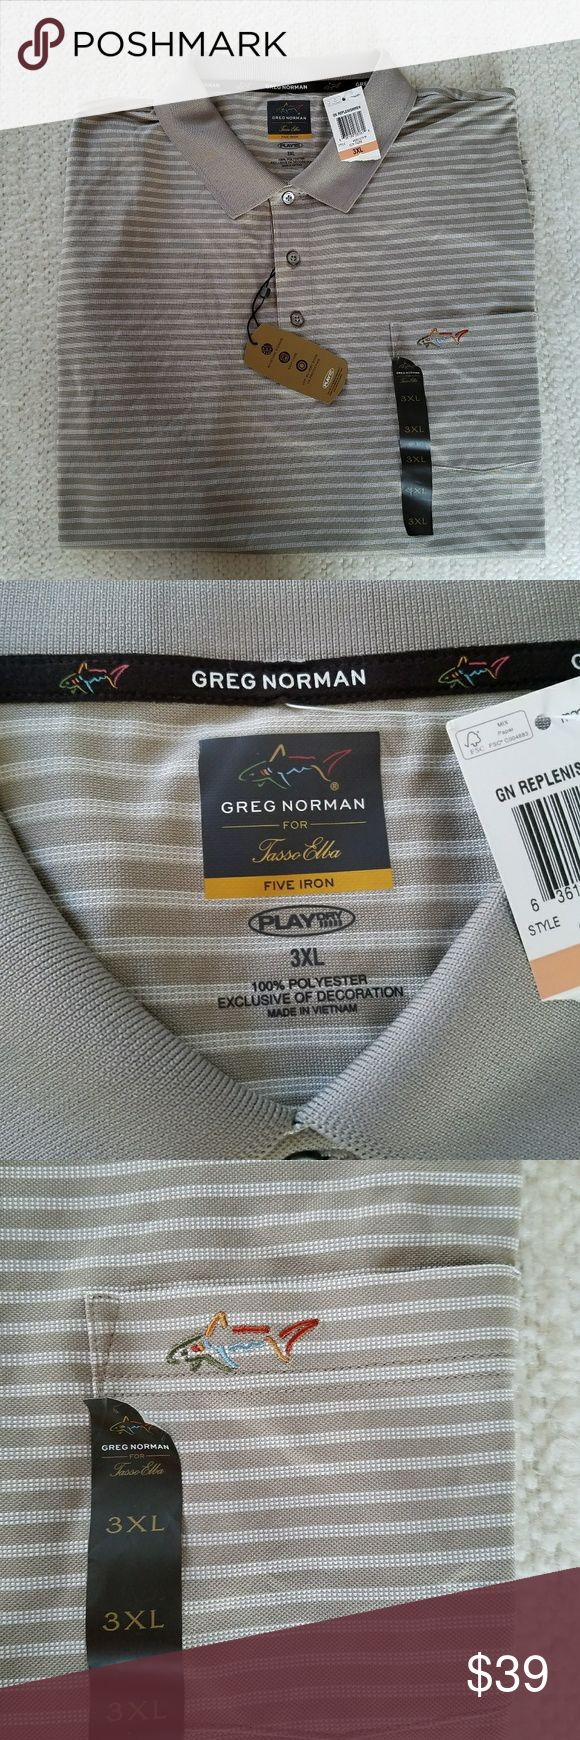 GREG NORMAN FIVE IRON POLO SHIRT 3XL NWT GREG NORMAN FIVE IRON POLO SHIRT 3XL This great polo shirt is tan with white stripes. It is a Play Dry Golf polo shirt with moisture wicking, easy care and UPF 30 Very Good UV Protection. Greg Norman  Shirts Polos